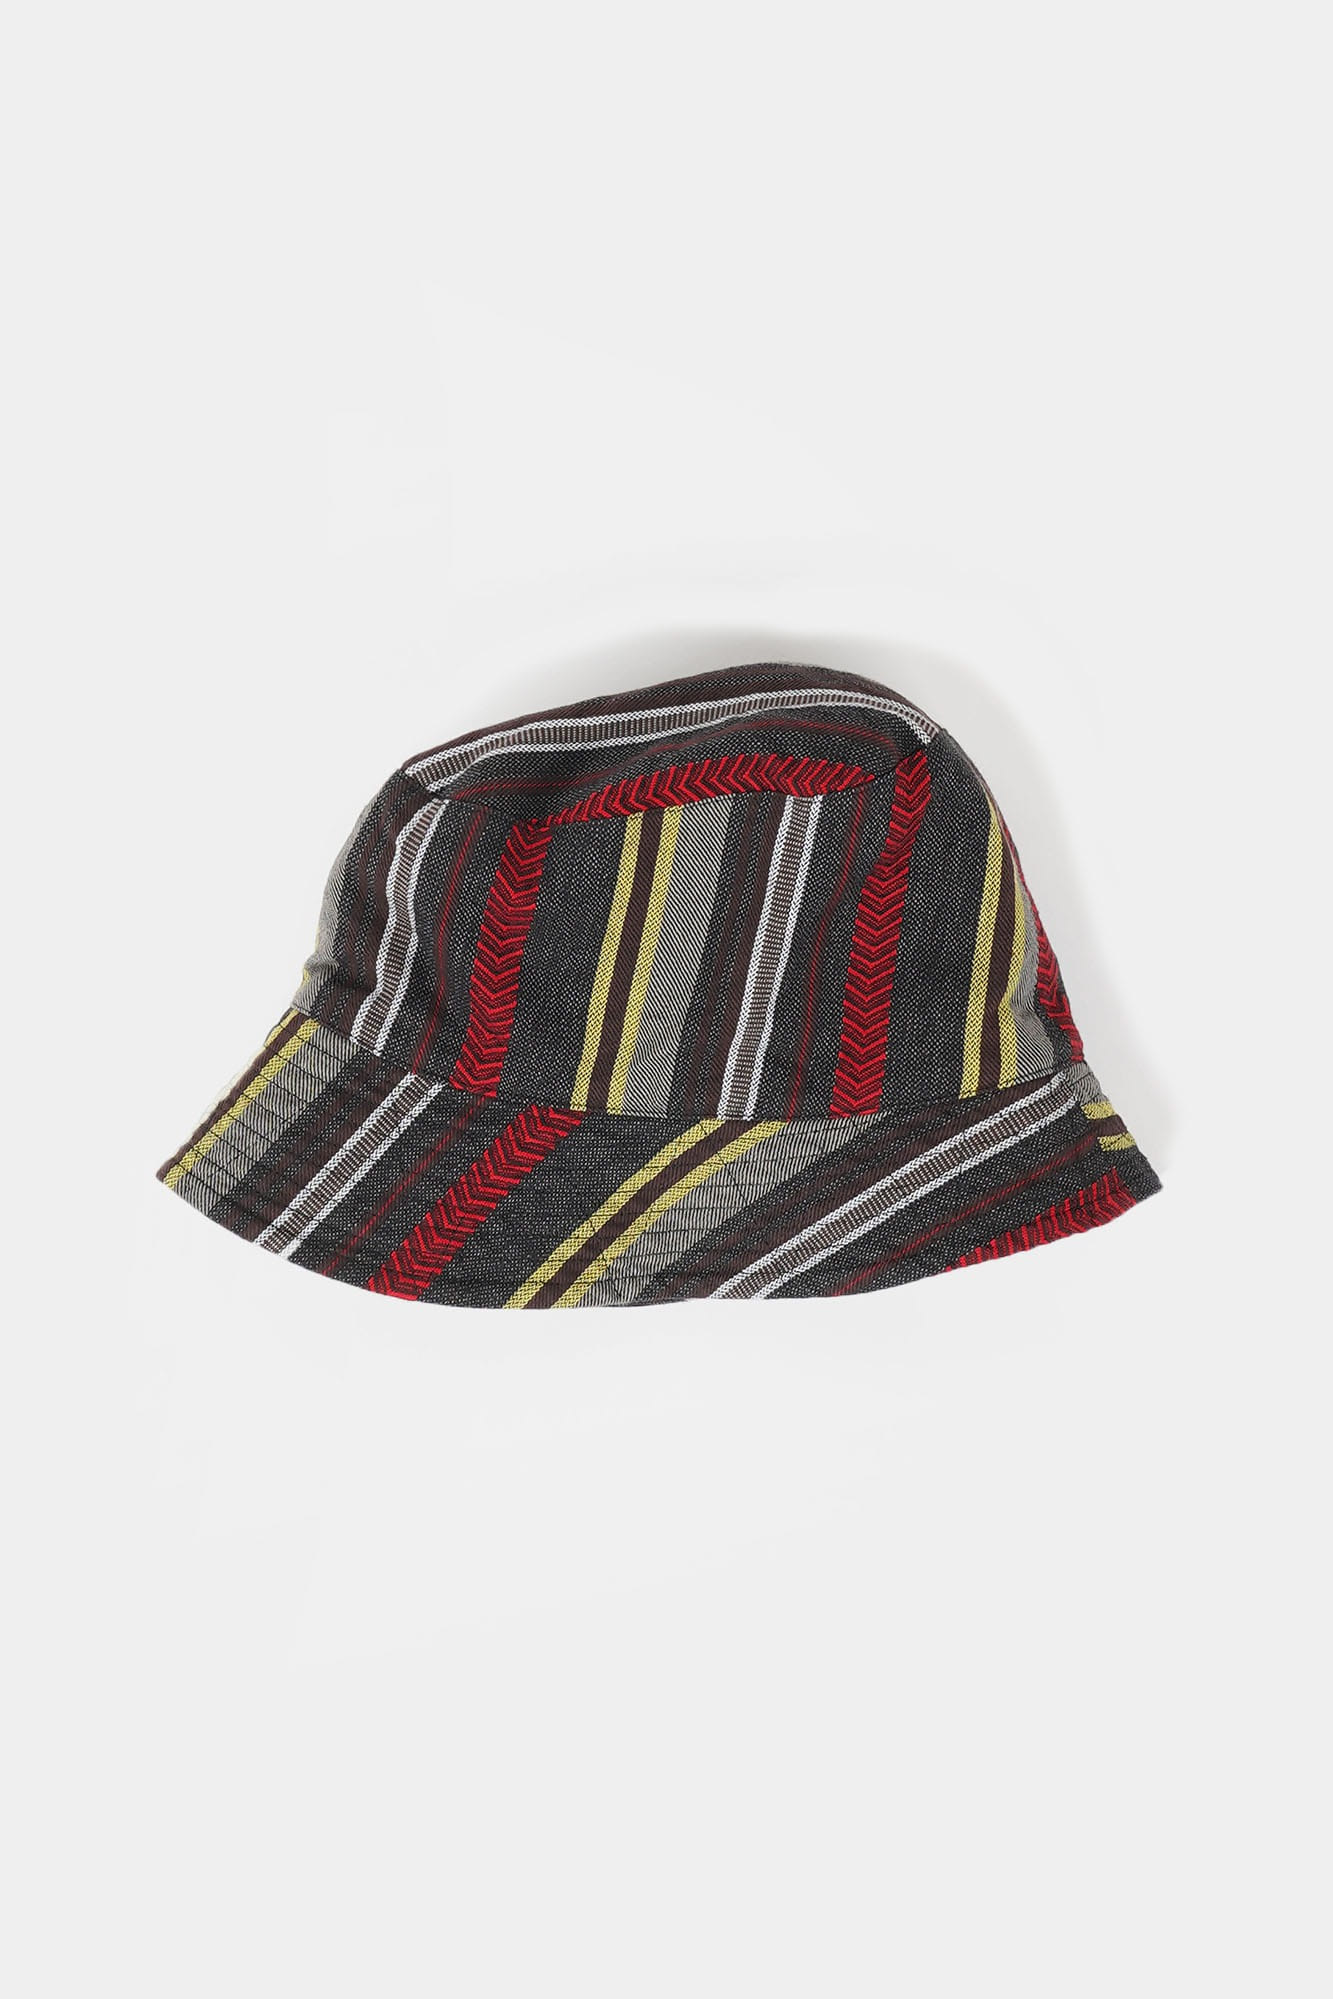 "ENGINEERED GARMENTS Bucket Hat ""Grey/Yellow/Red Herringbone Dobby Stripe"""